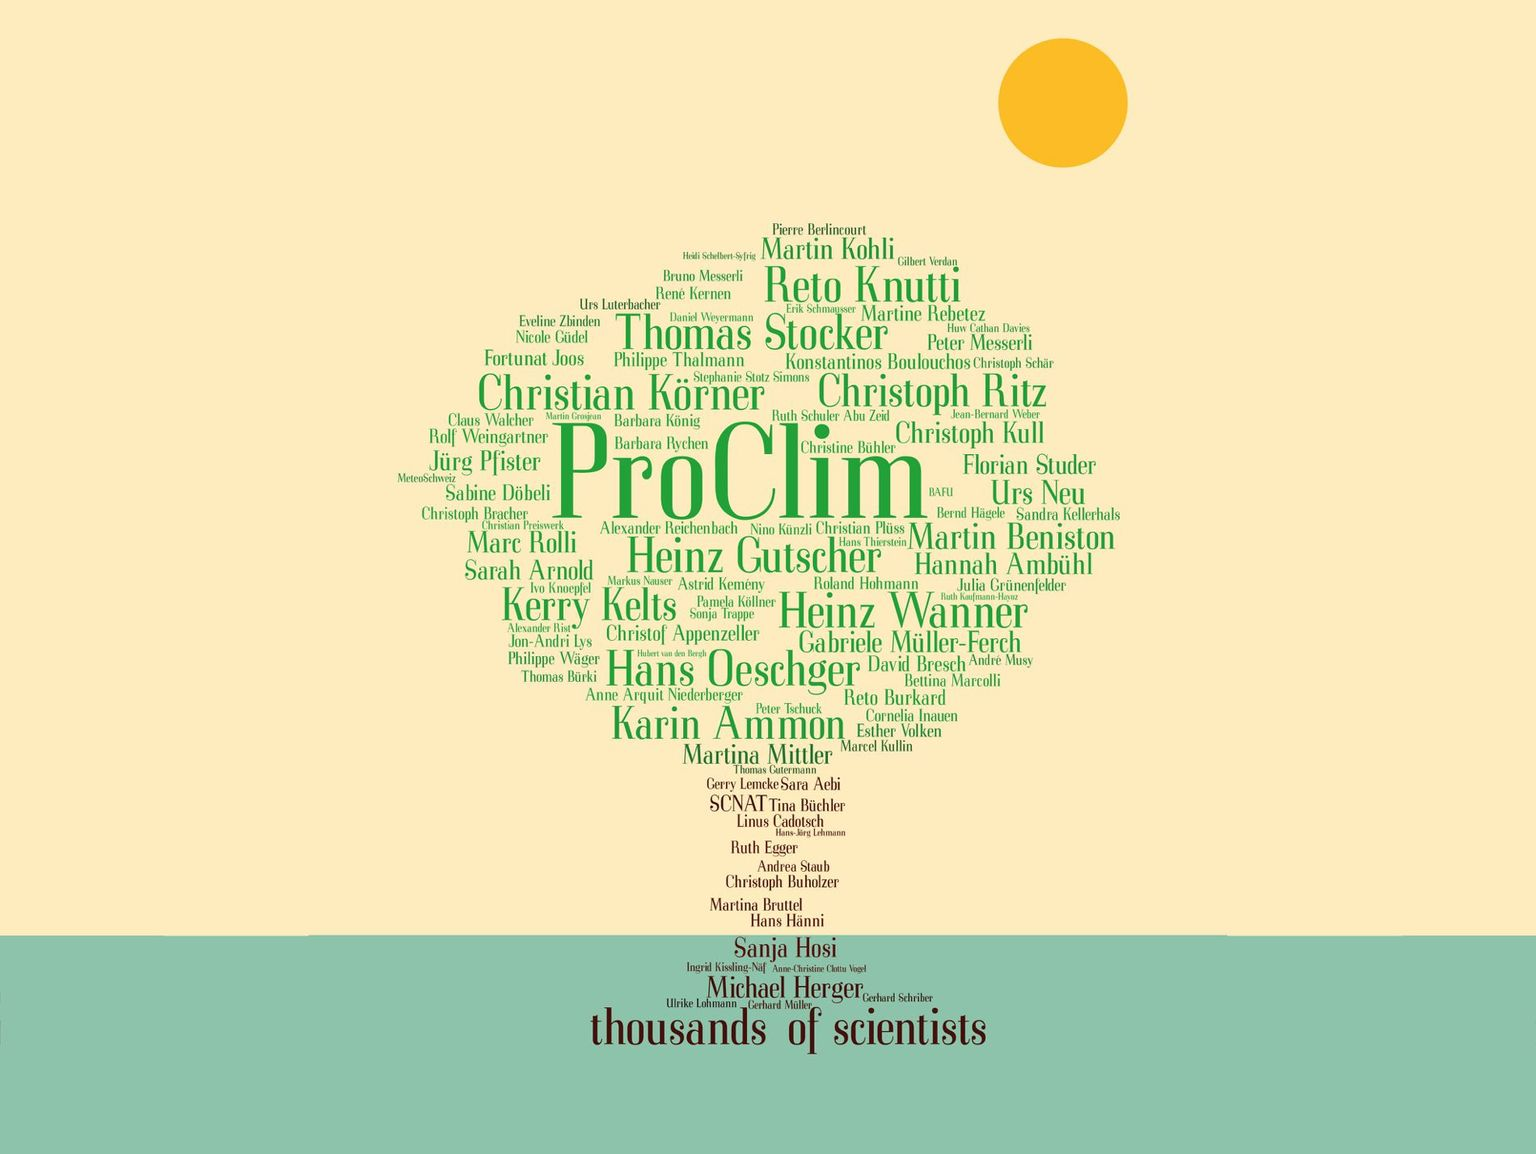 The ProClim tree has been growing with the help of thousands of committed people.